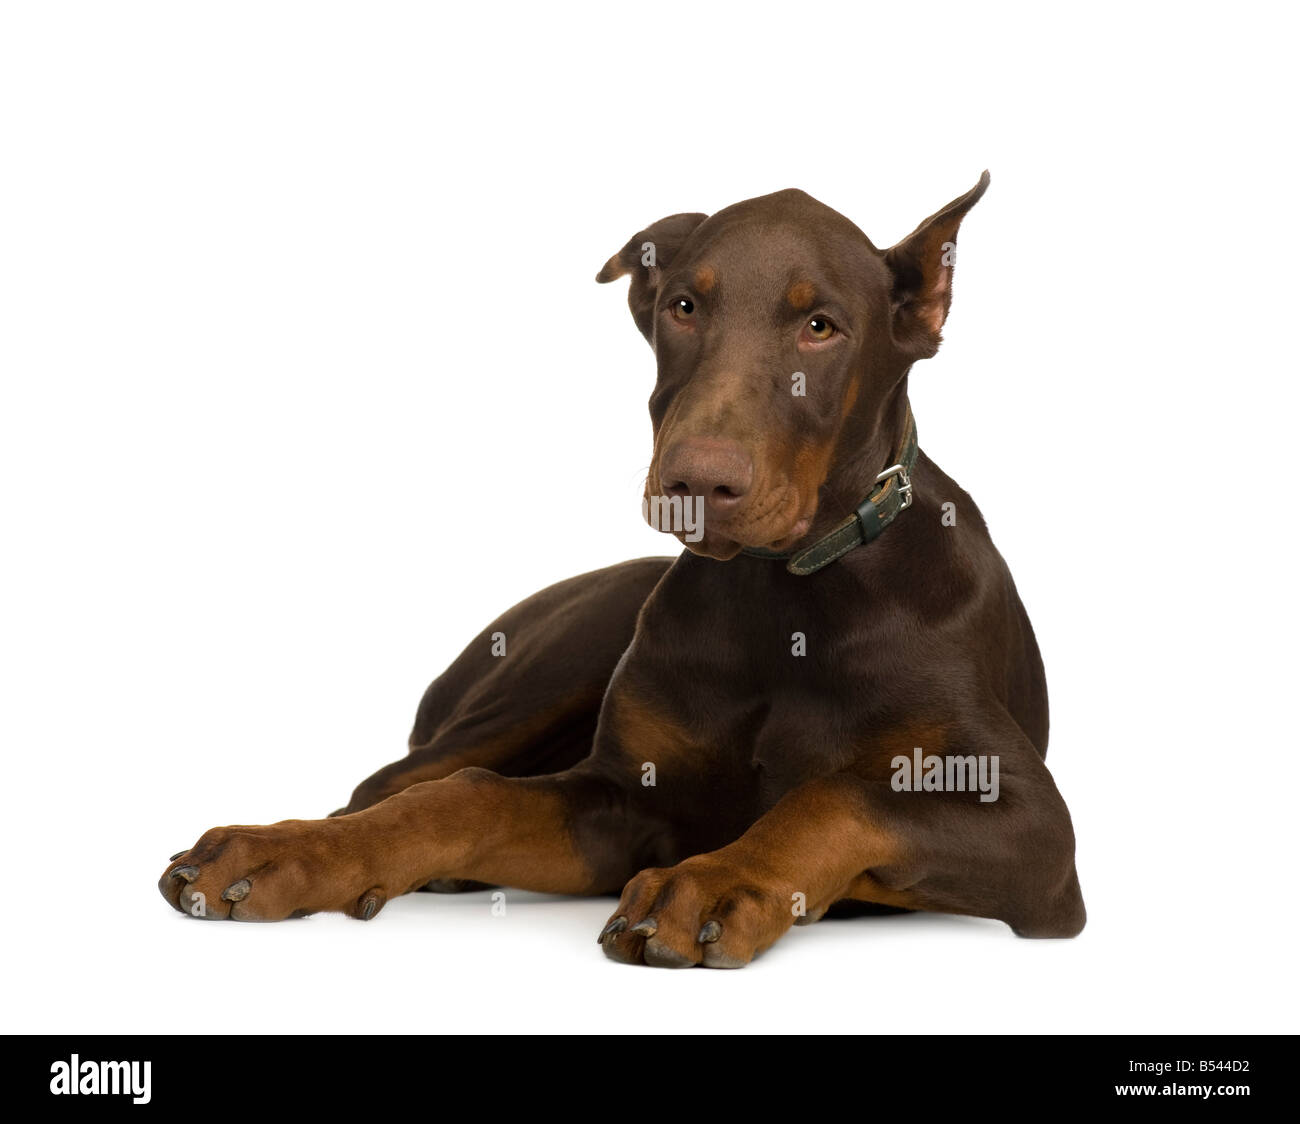 Doberman Pinscher 4 months in front of a white background - Stock Image